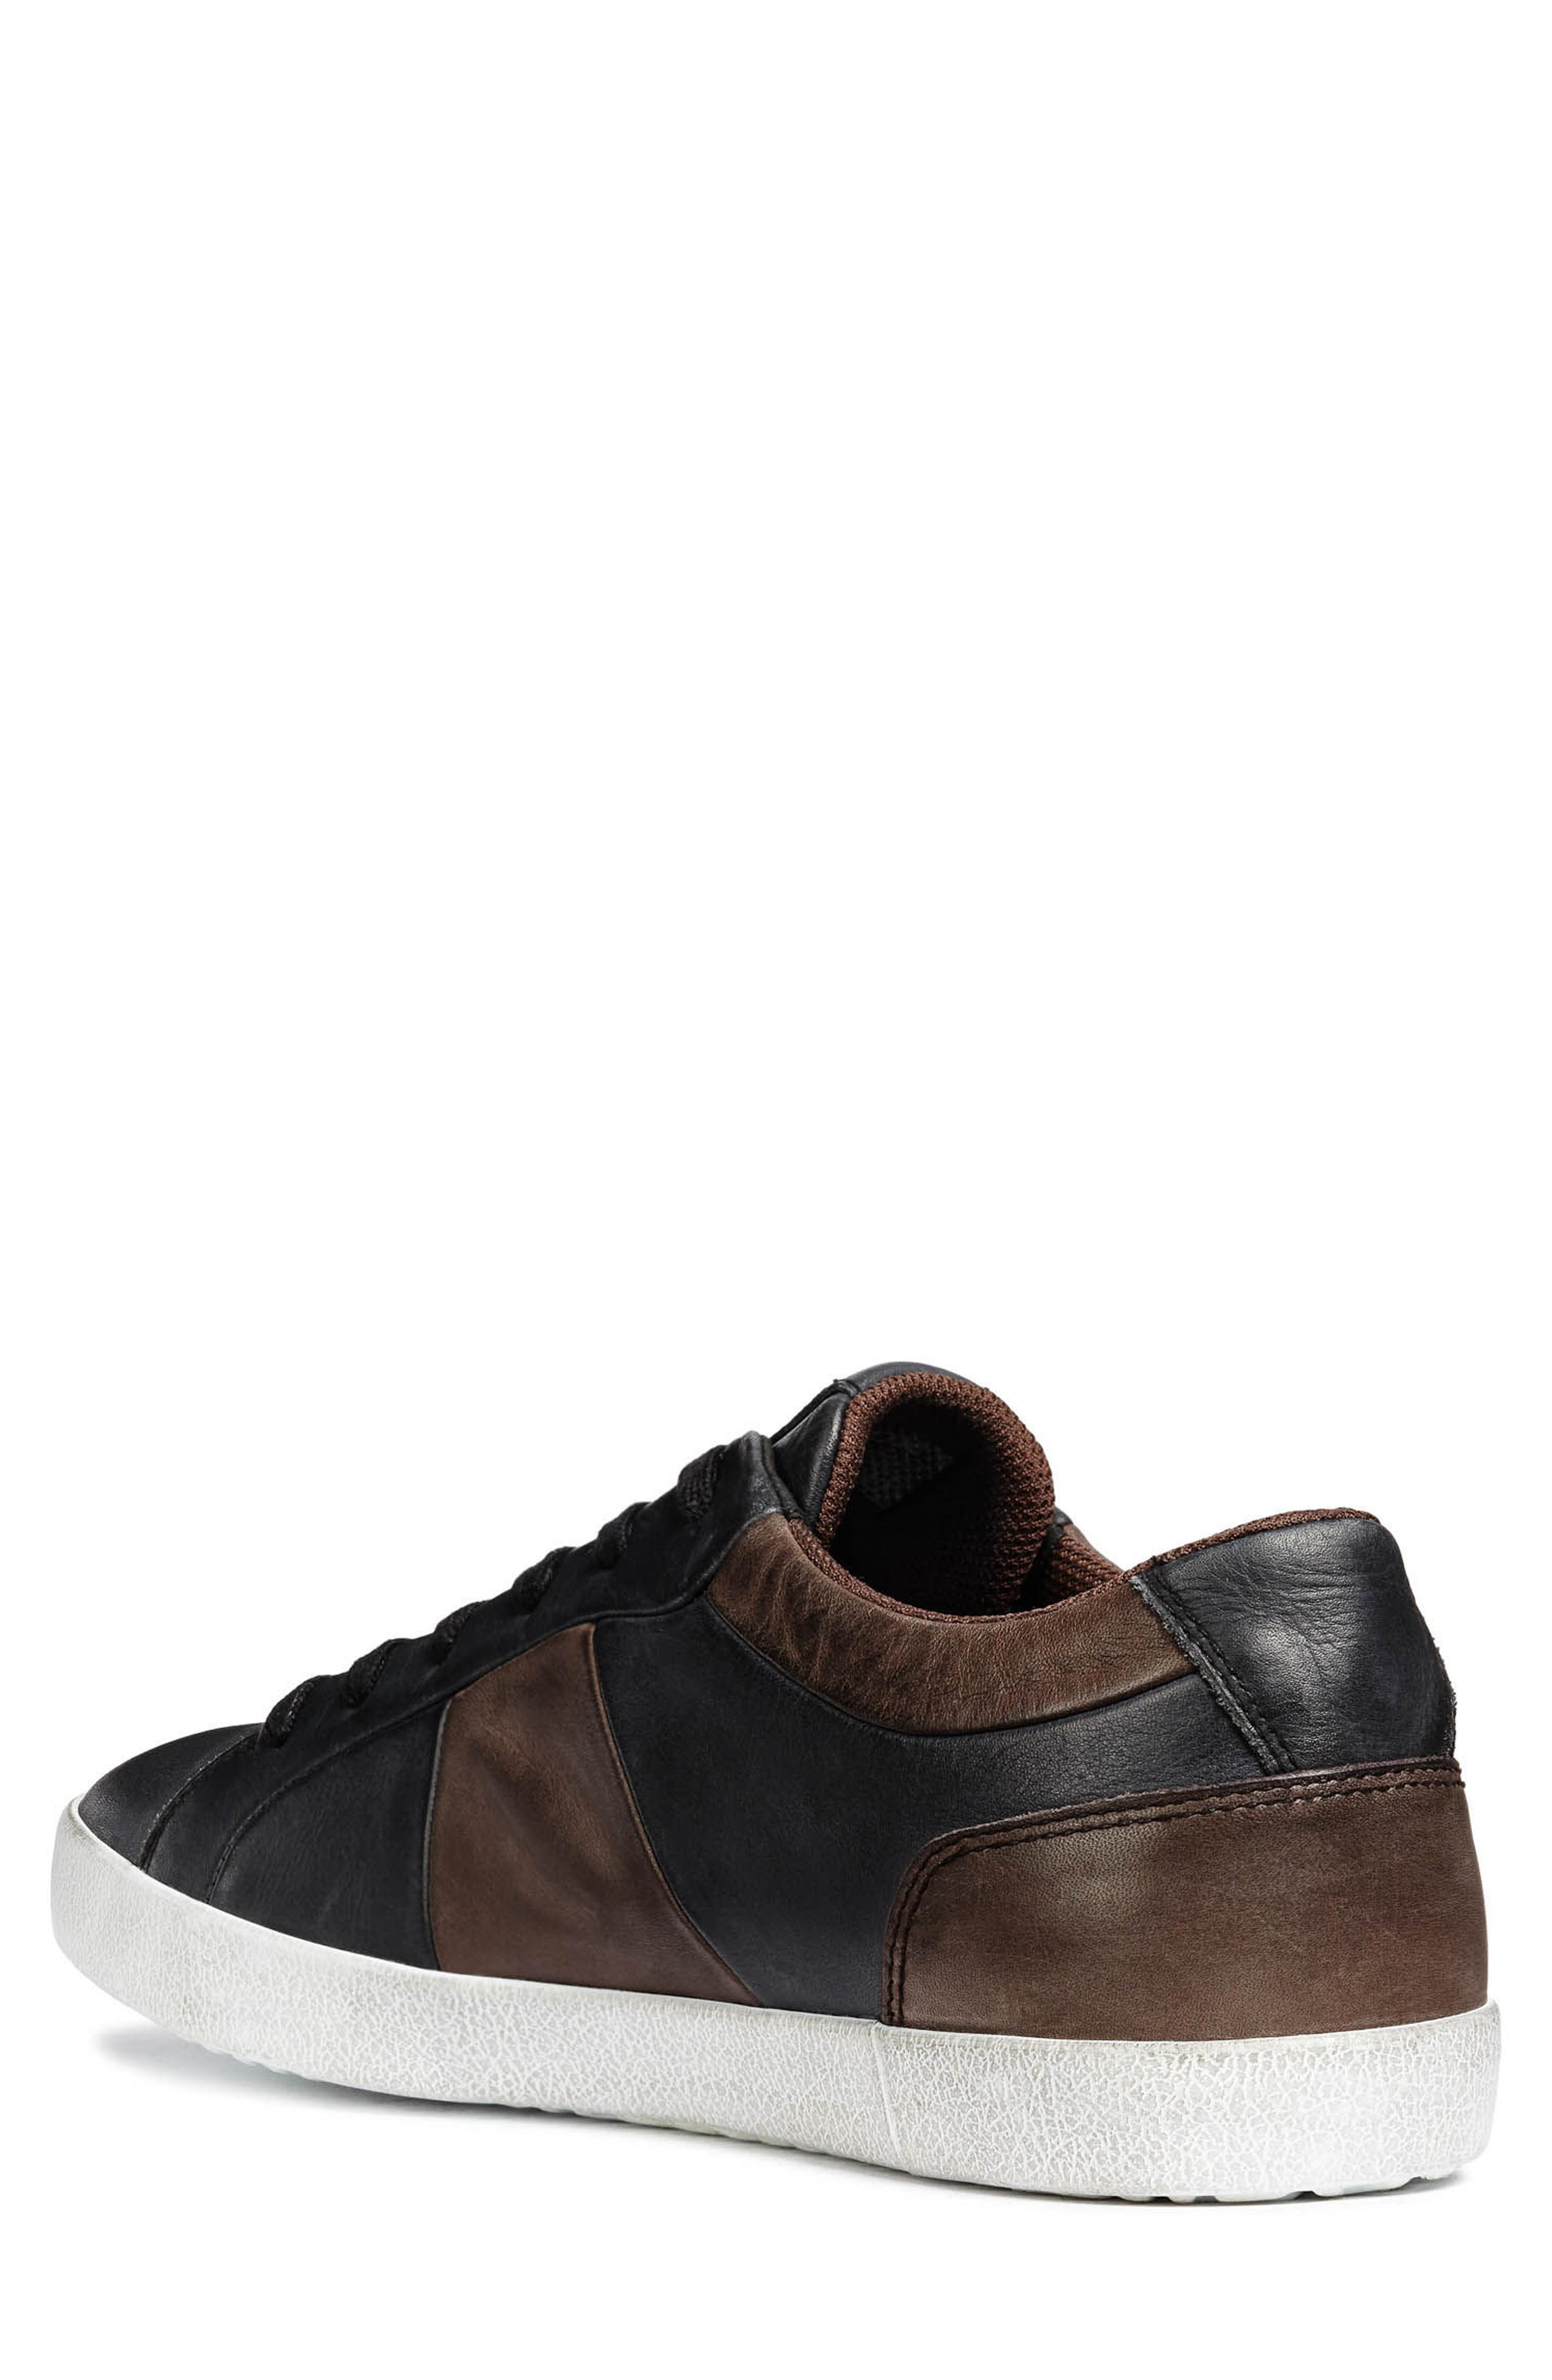 Smart 85 Low Top Sneaker,                             Alternate thumbnail 2, color,                             BLACK/ COFFEE LEATHER